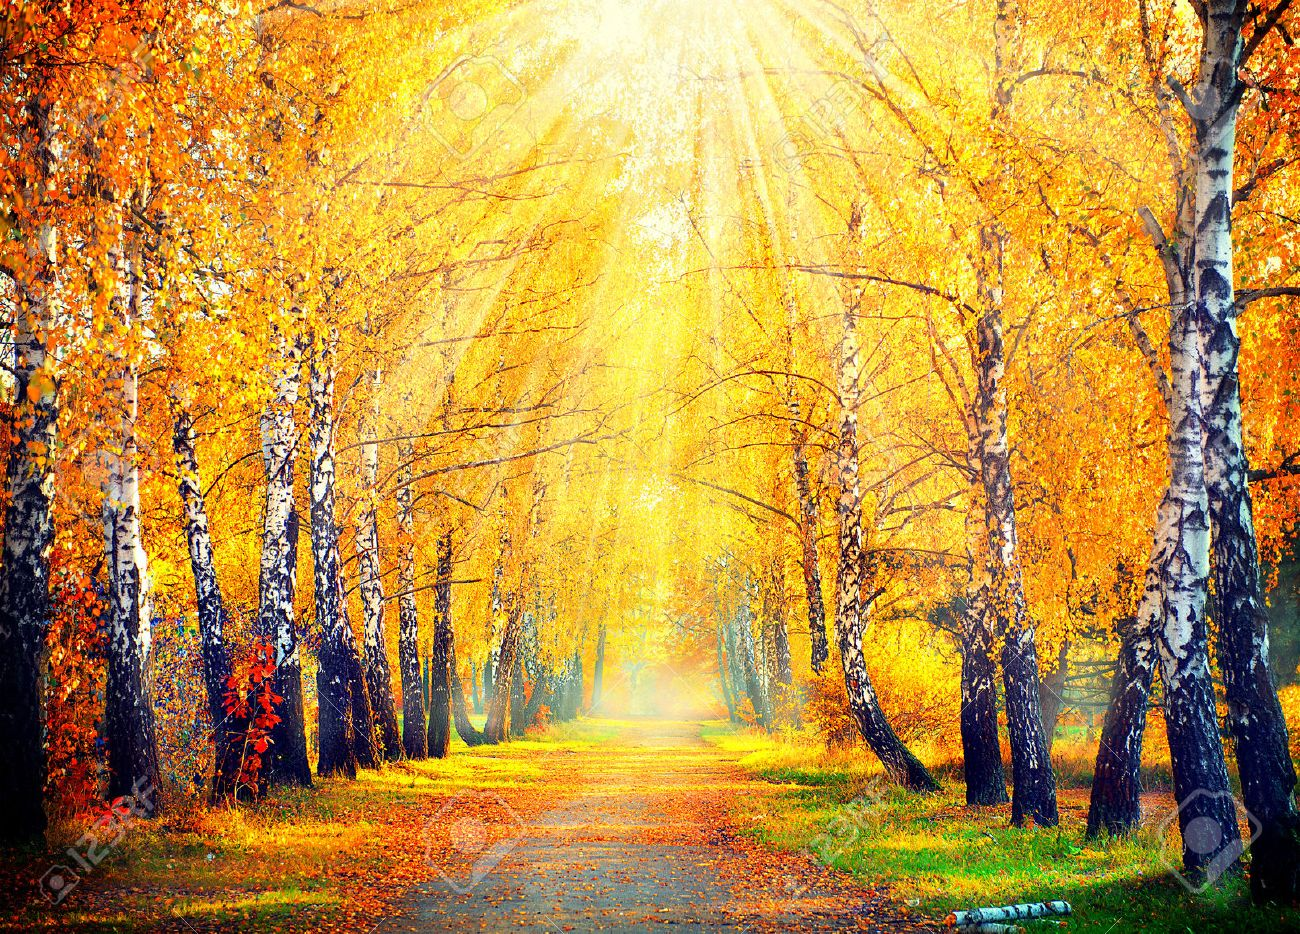 More similar stock images of 3d landscape with fall tree - Autumn Trees And Leaves In Sun Rays Stock Photo